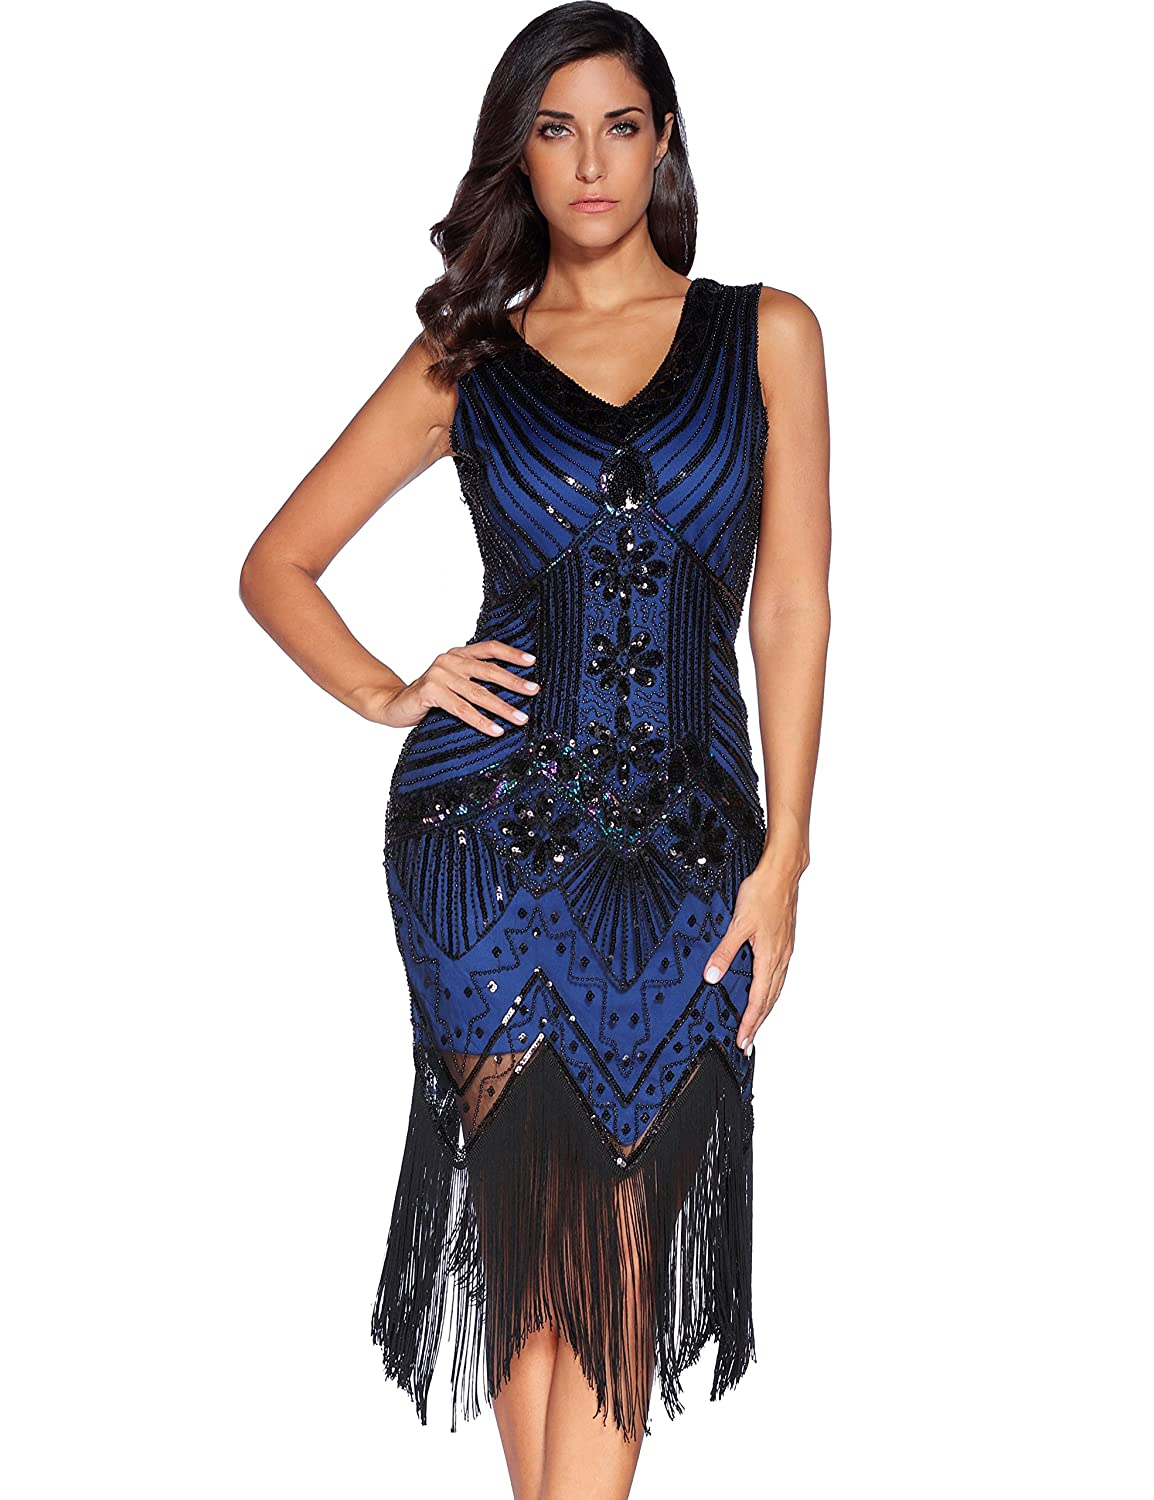 b029dadf Roaring 20s Costumes- Flapper Costumes, Gangster Costumes Meilun 1920s  Sequined Vintage Dress Beaded Gatsby